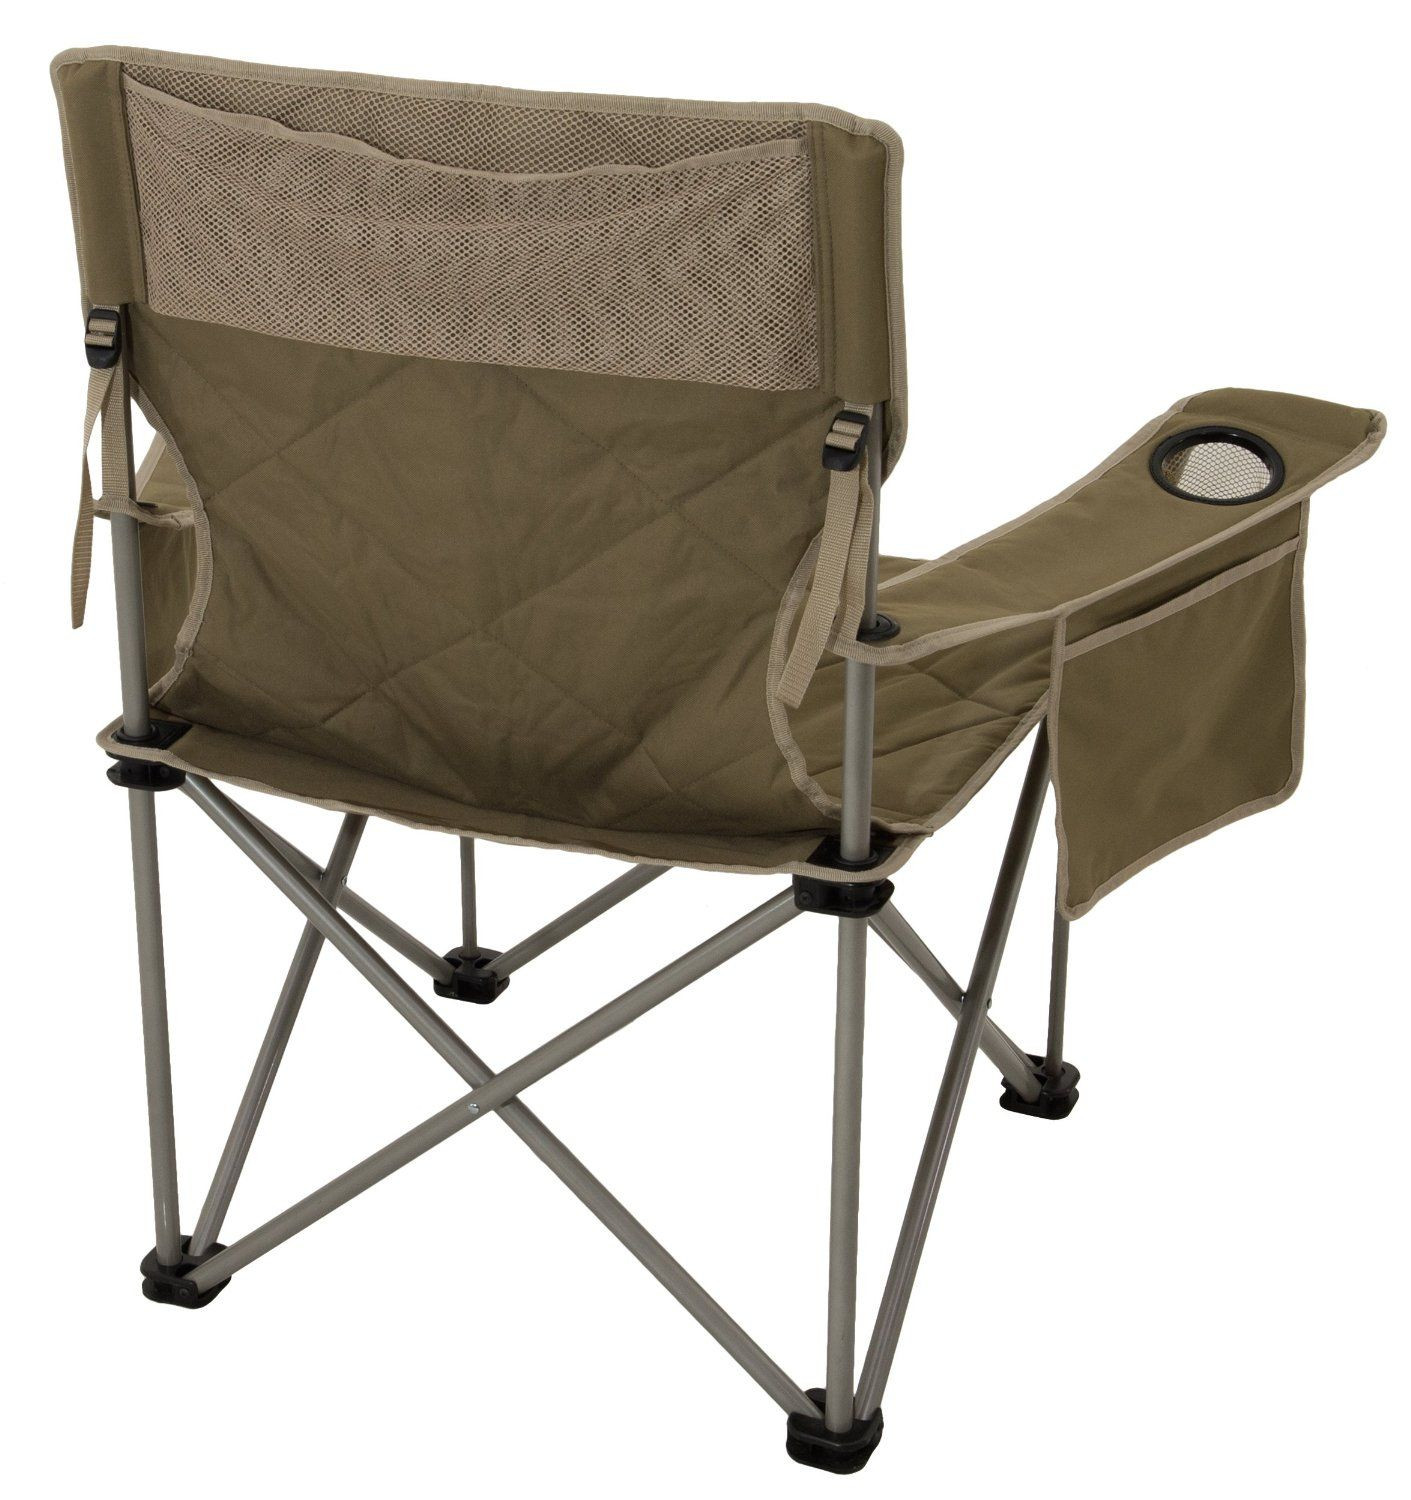 Good Camping Chairs For Heavy People | For Big And Heavy People. Outdoor ...